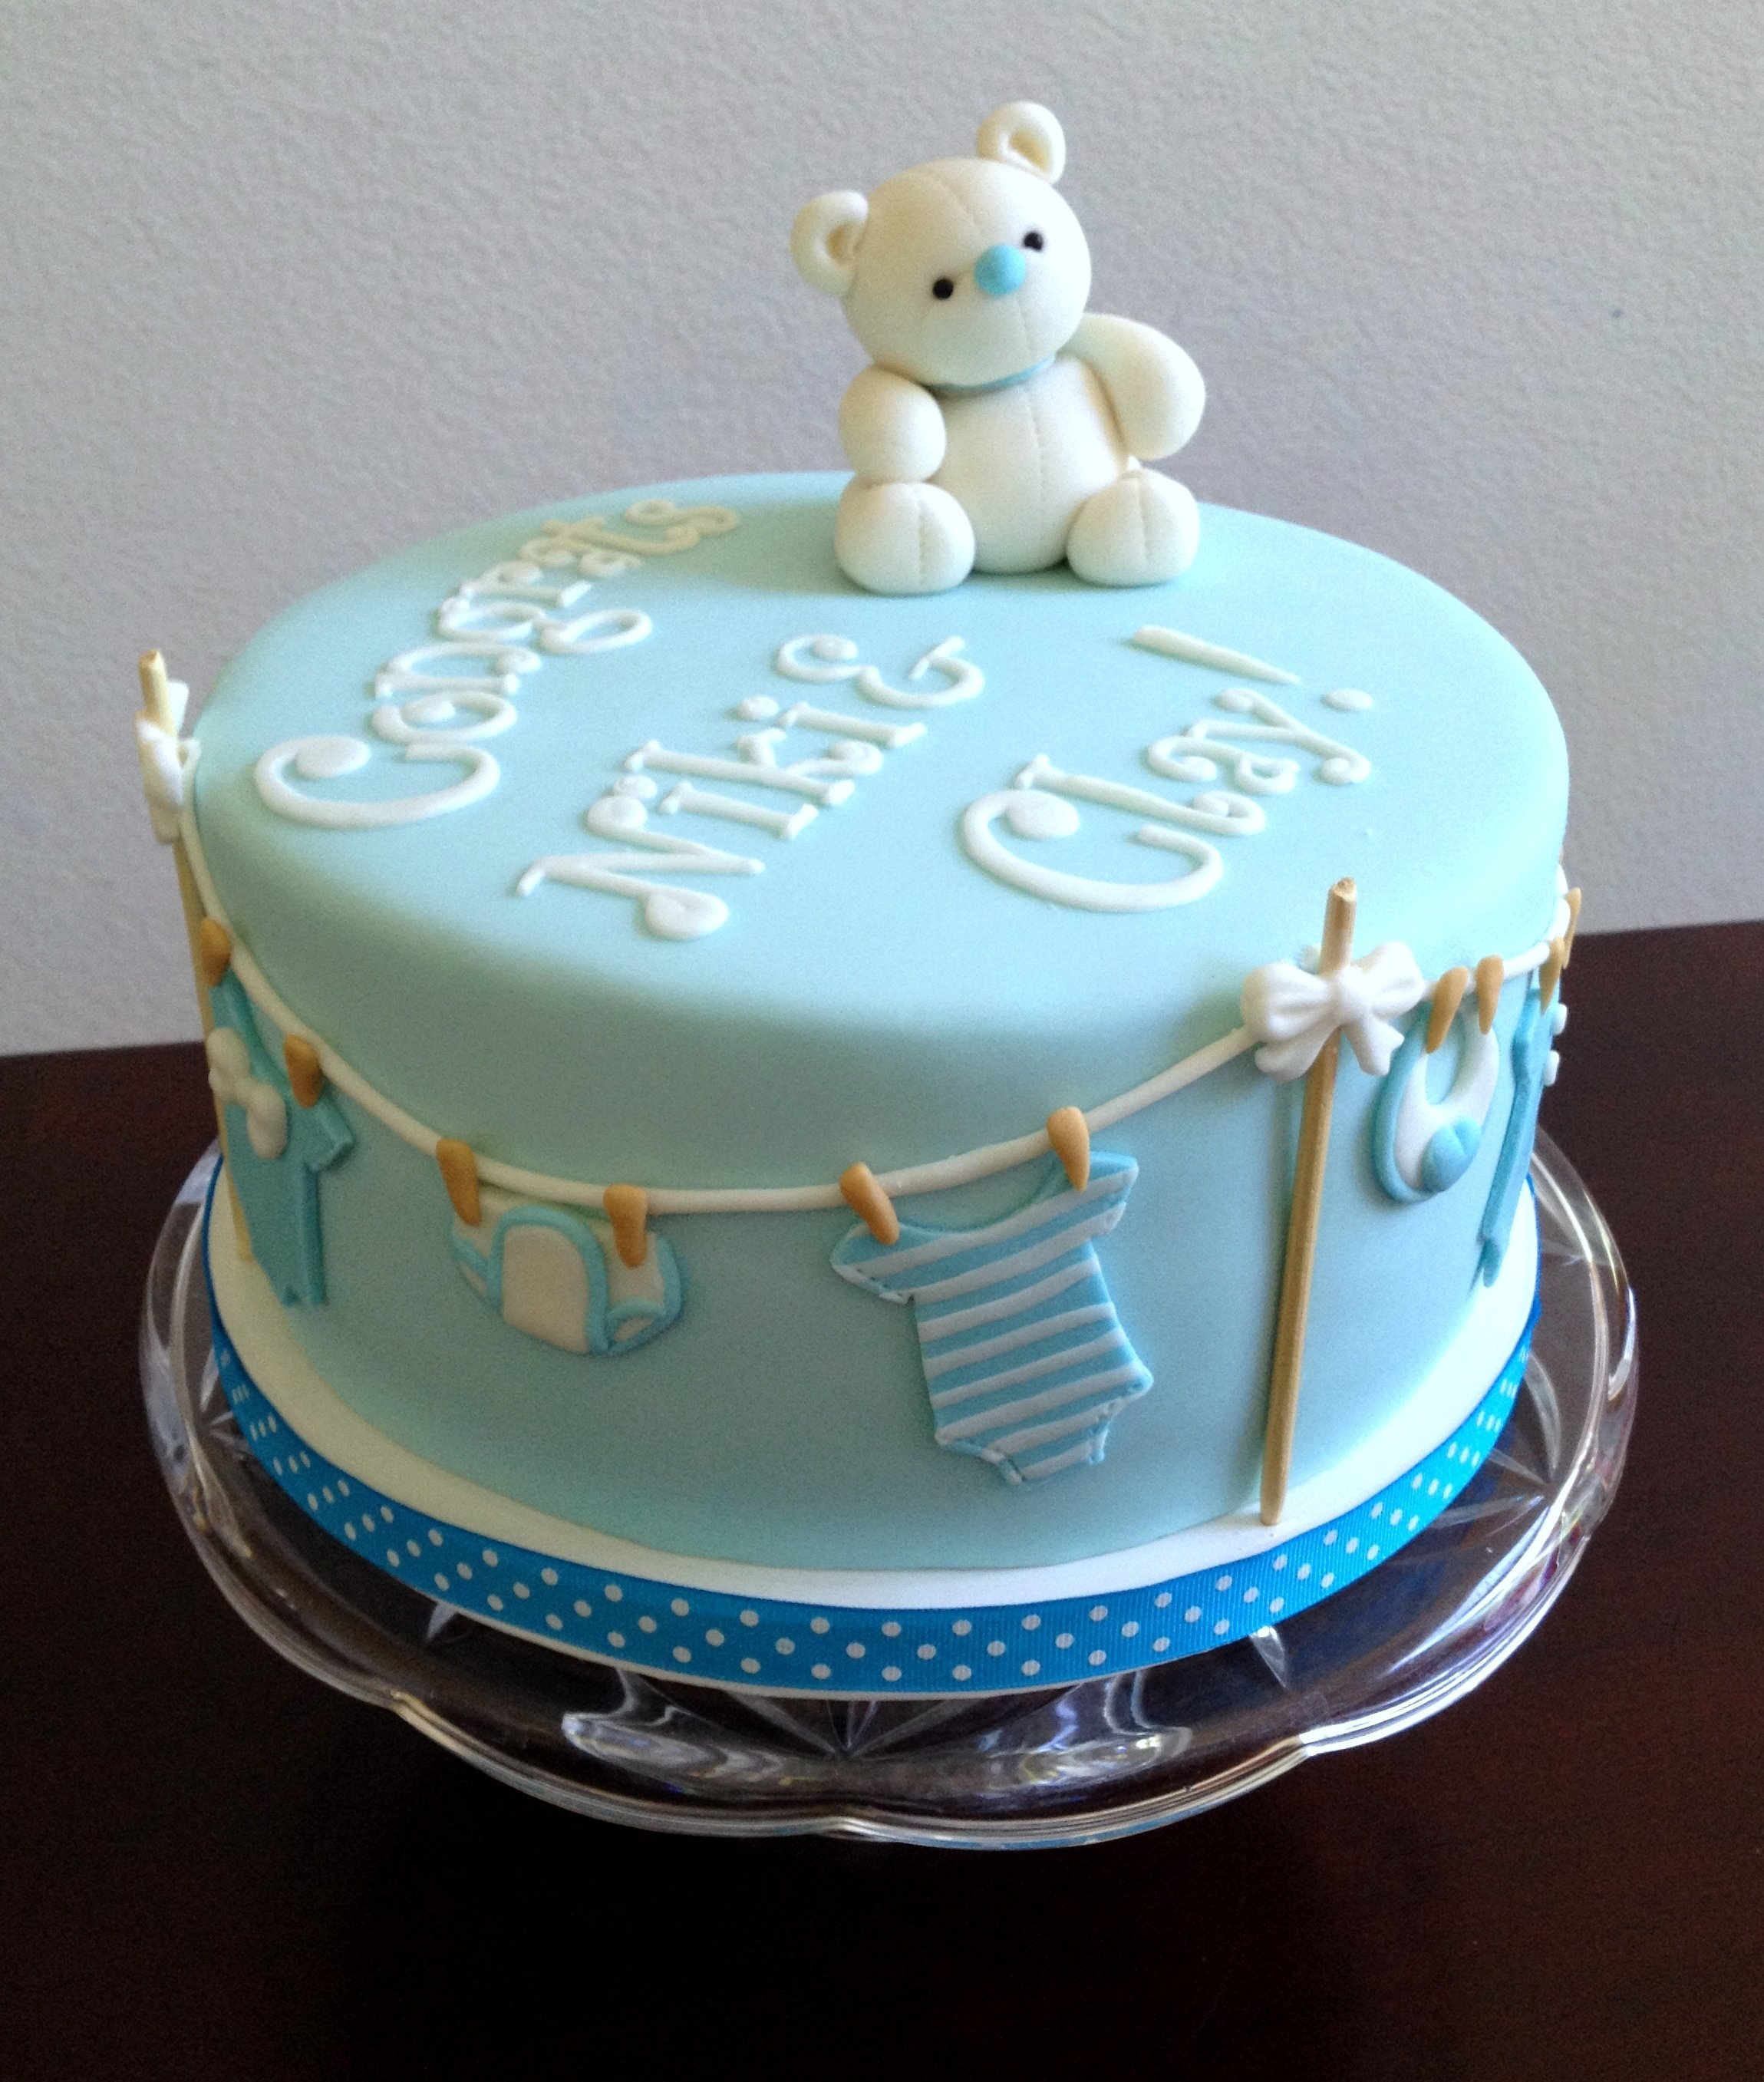 10 Cute Baby Boy First Birthday Cake Ideas baby boy cakes be equipped boy baby shower cupcake ideas be equipped